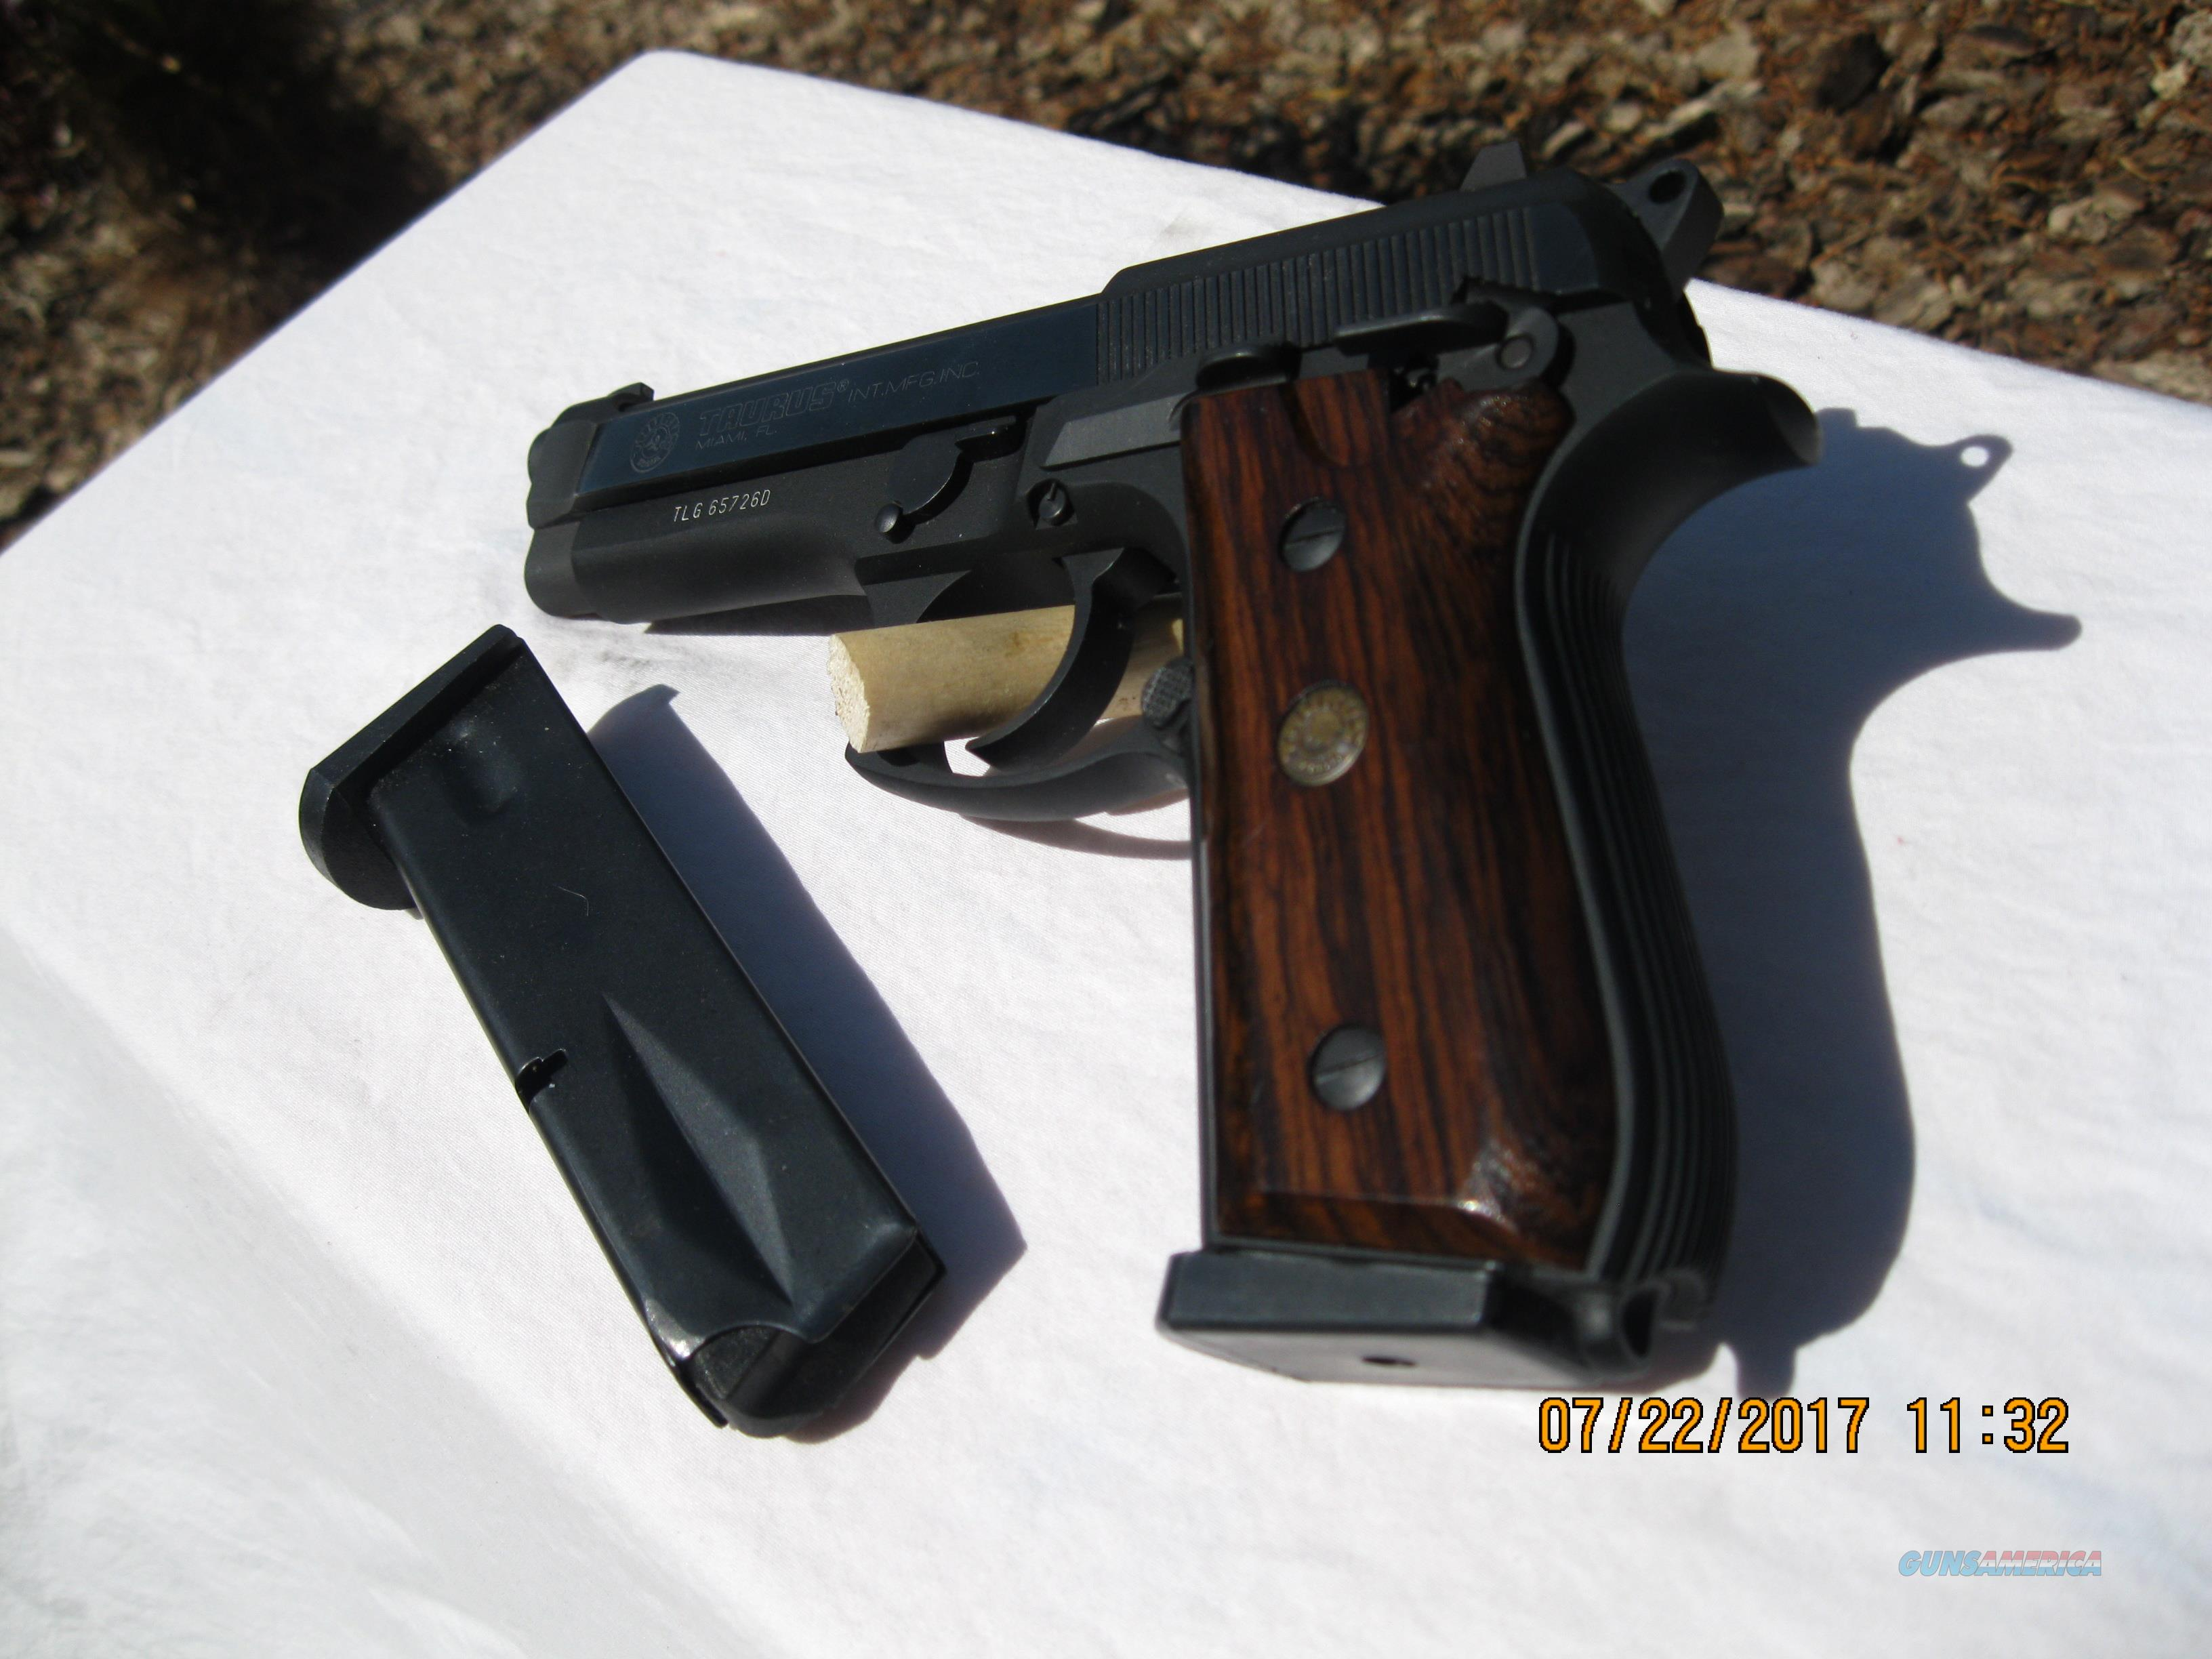 TAURUS MODEL 92 IN 9MM IN NEAR NEW CONDITION  Guns > Pistols > Taurus Pistols > Semi Auto Pistols > Steel Frame